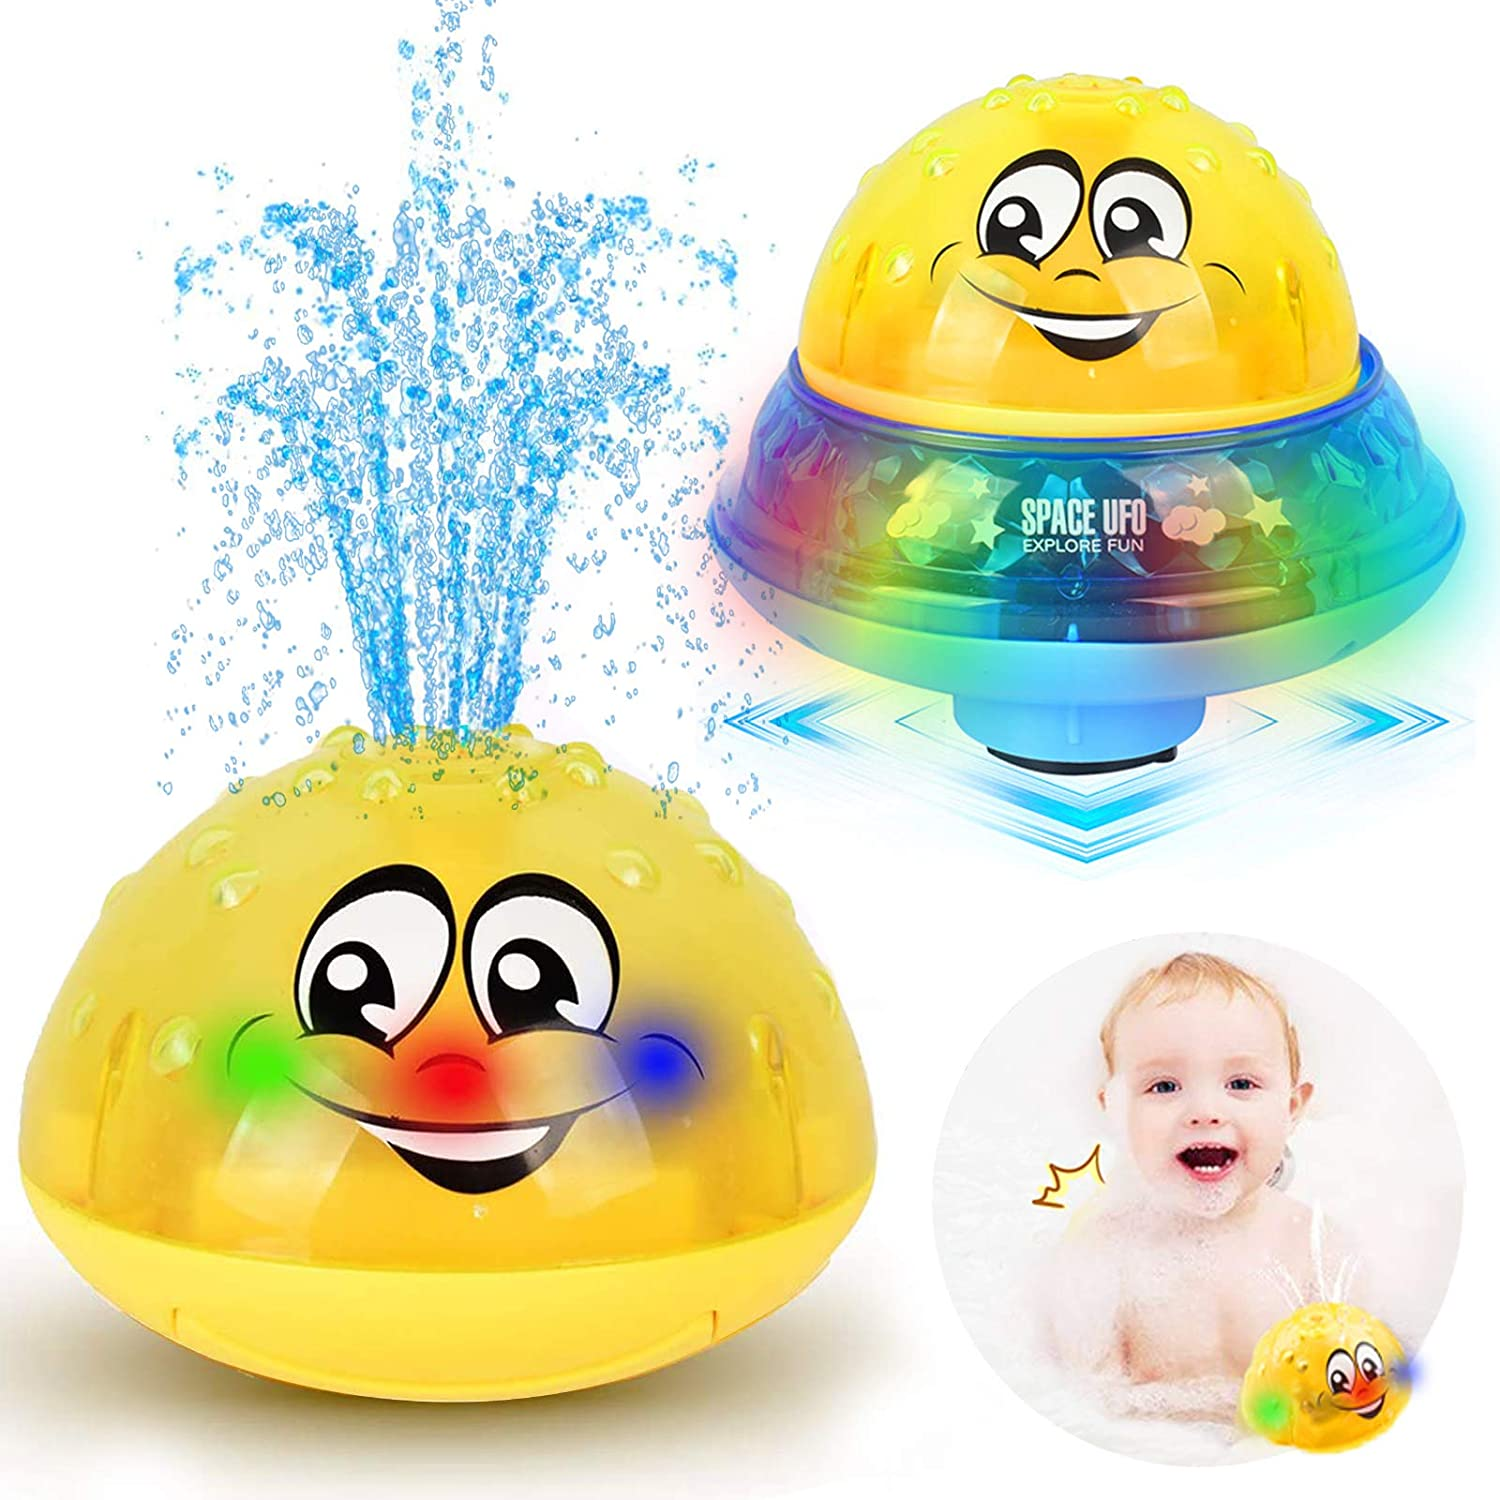 Piglagogo Bath Toys 2 in 1 Induction Water Spray Toy /& Space UFO Car Toys with Music and Flashing Lights Fountain Toy Automatic Induction Sprinkler Bath Toy Bathtub Toys for Toddlers